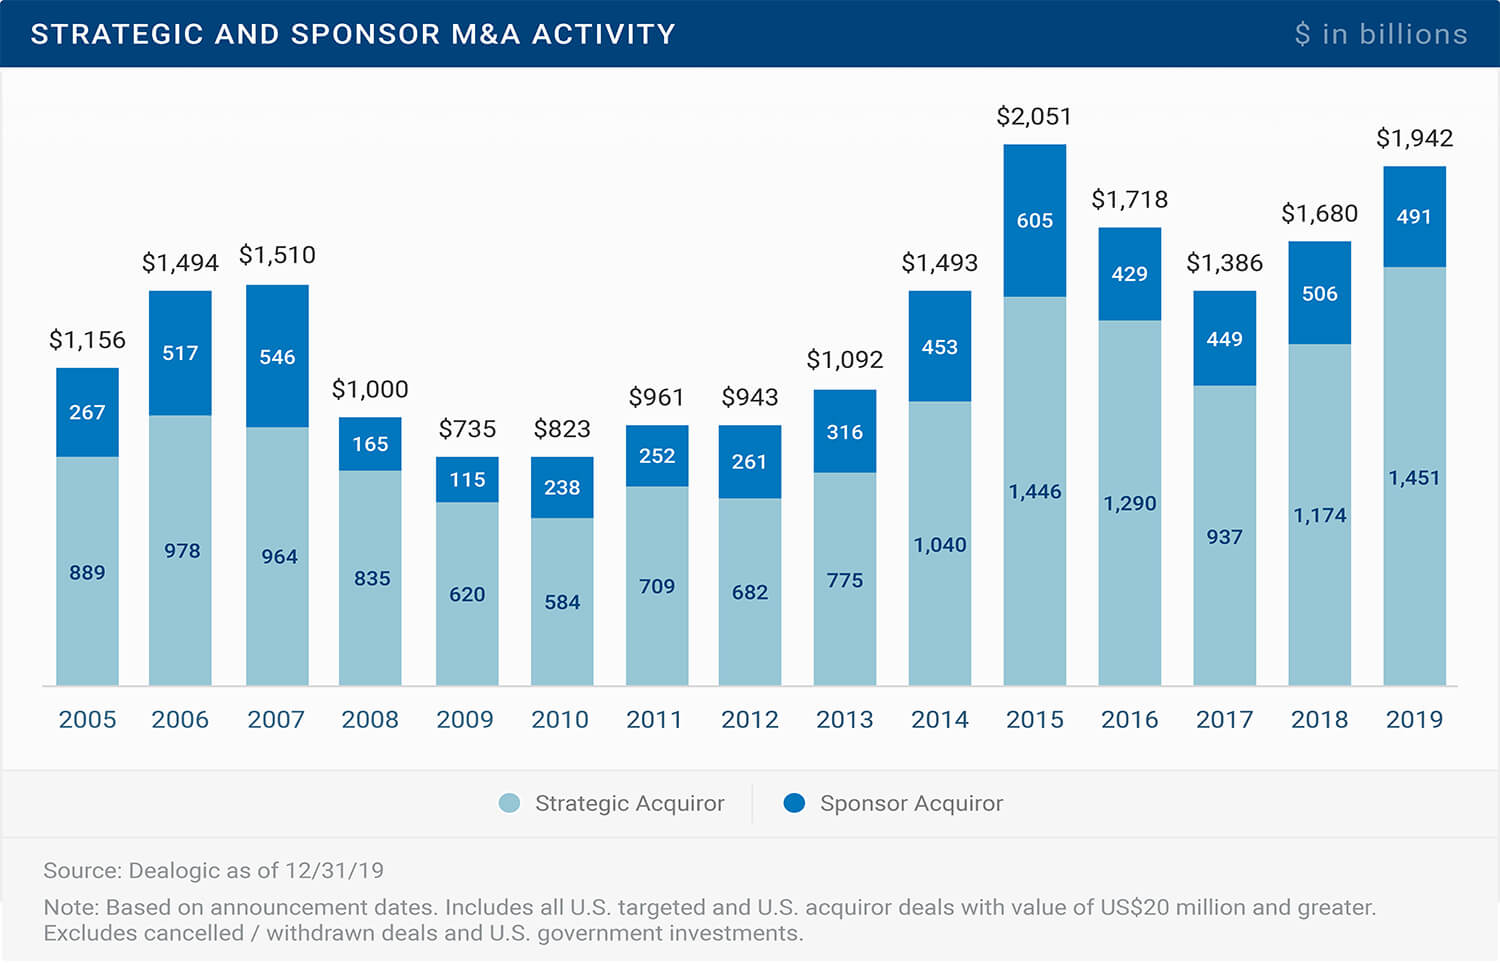 Strategic and Sponser M&A Activity